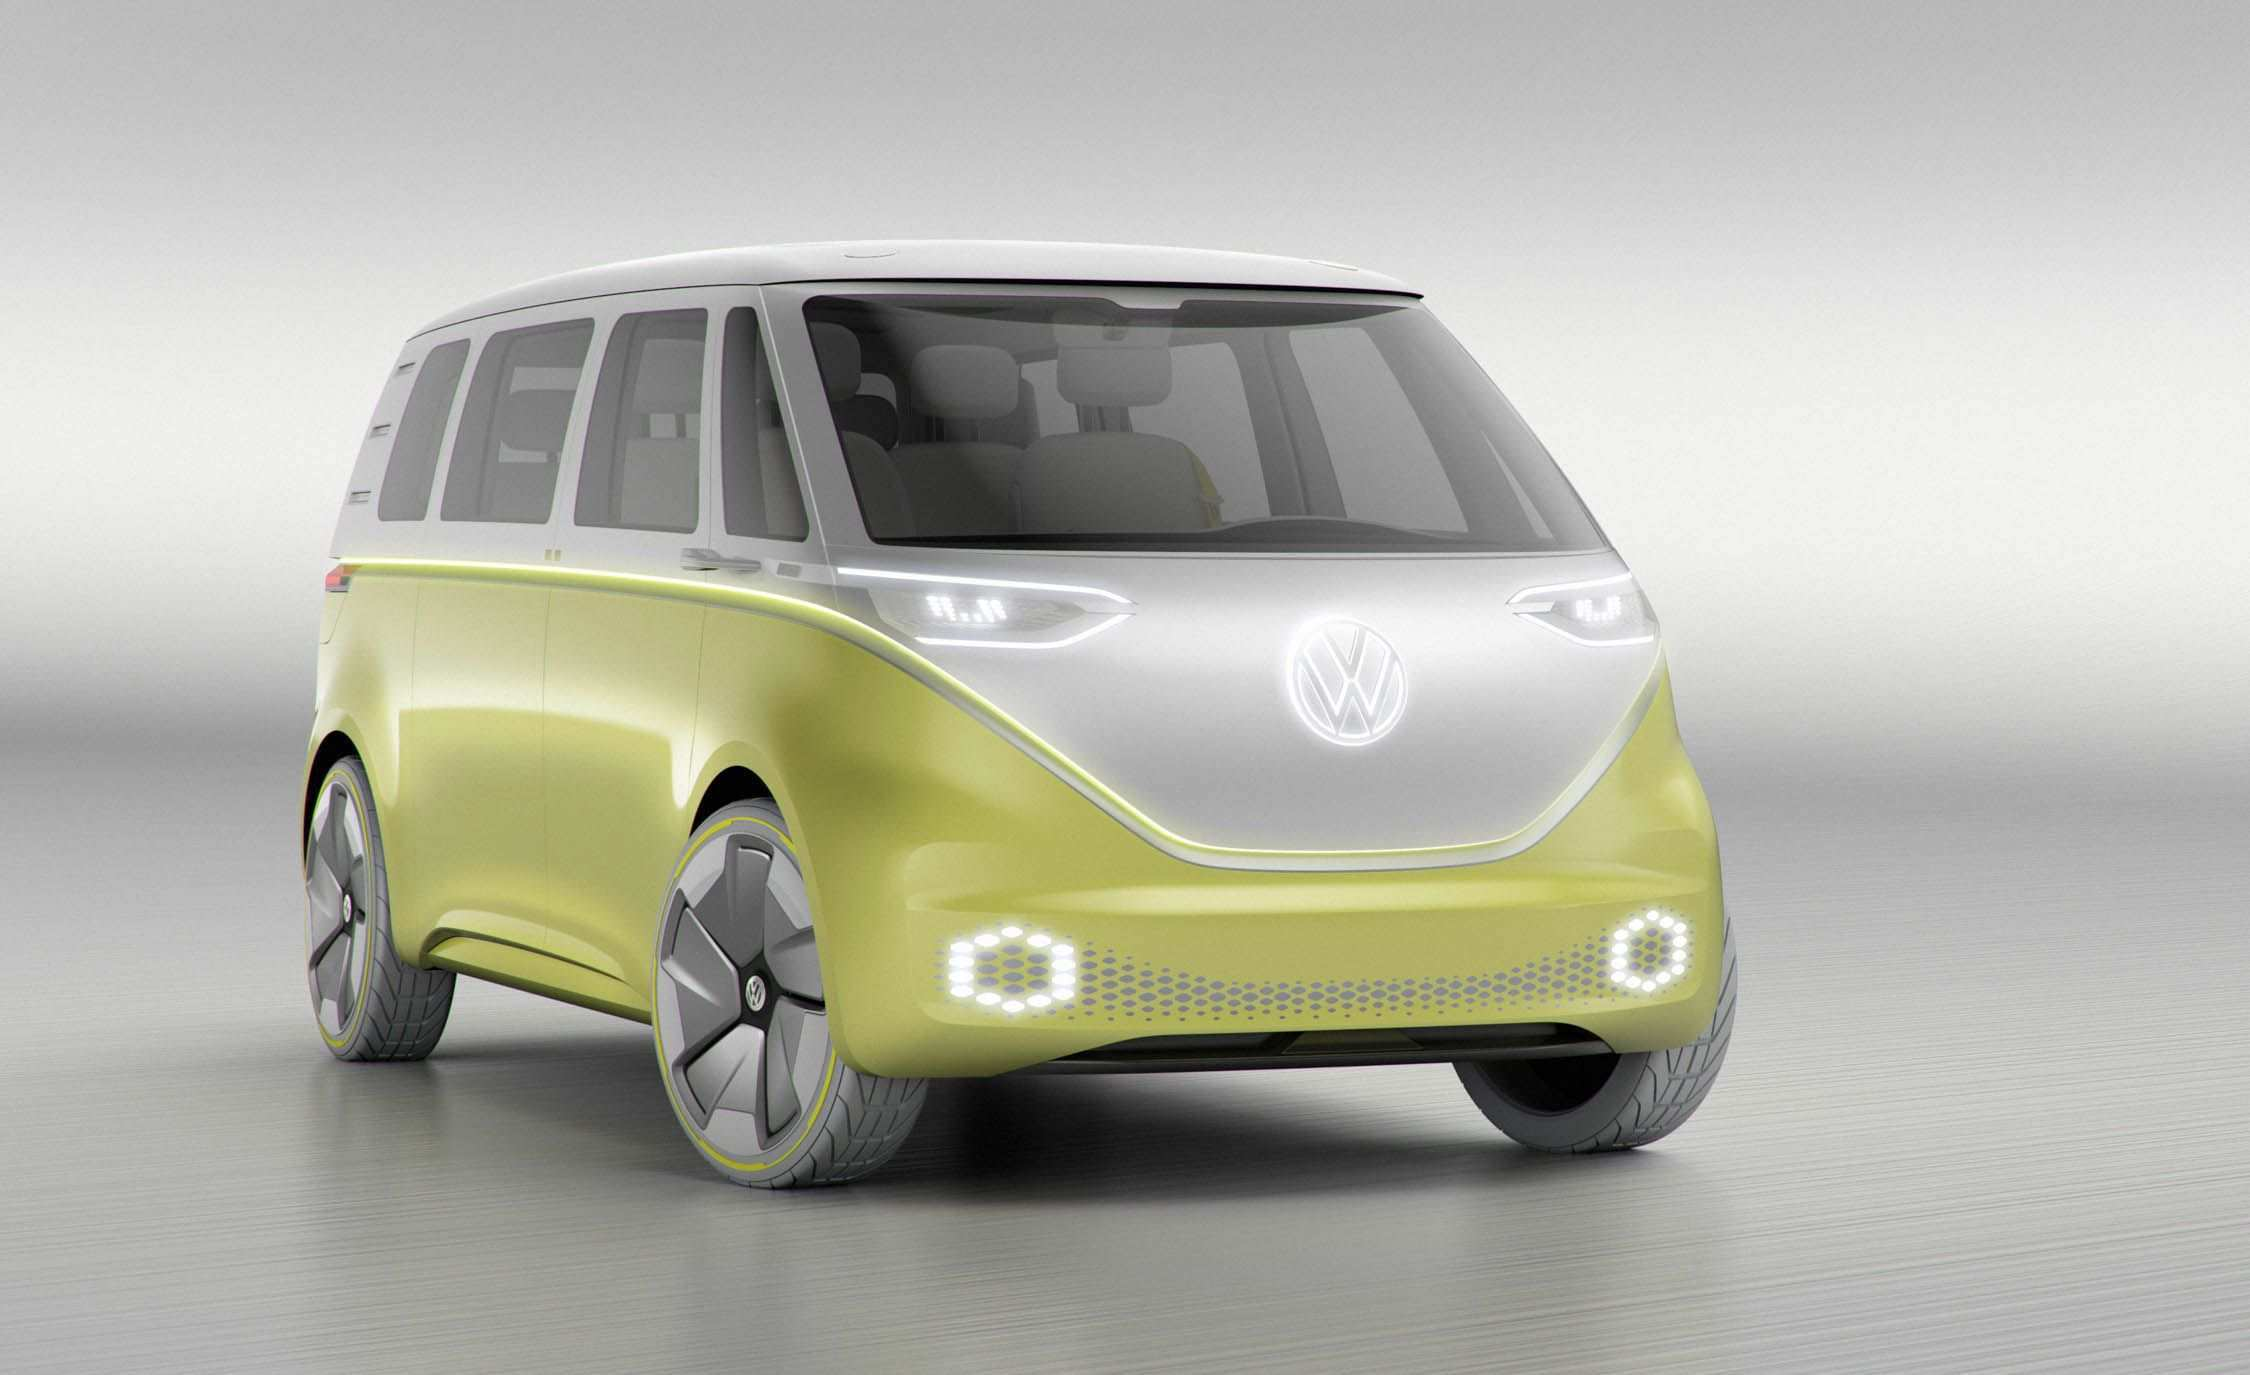 71 All New 2020 Vw Bus Price Spesification by 2020 Vw Bus Price